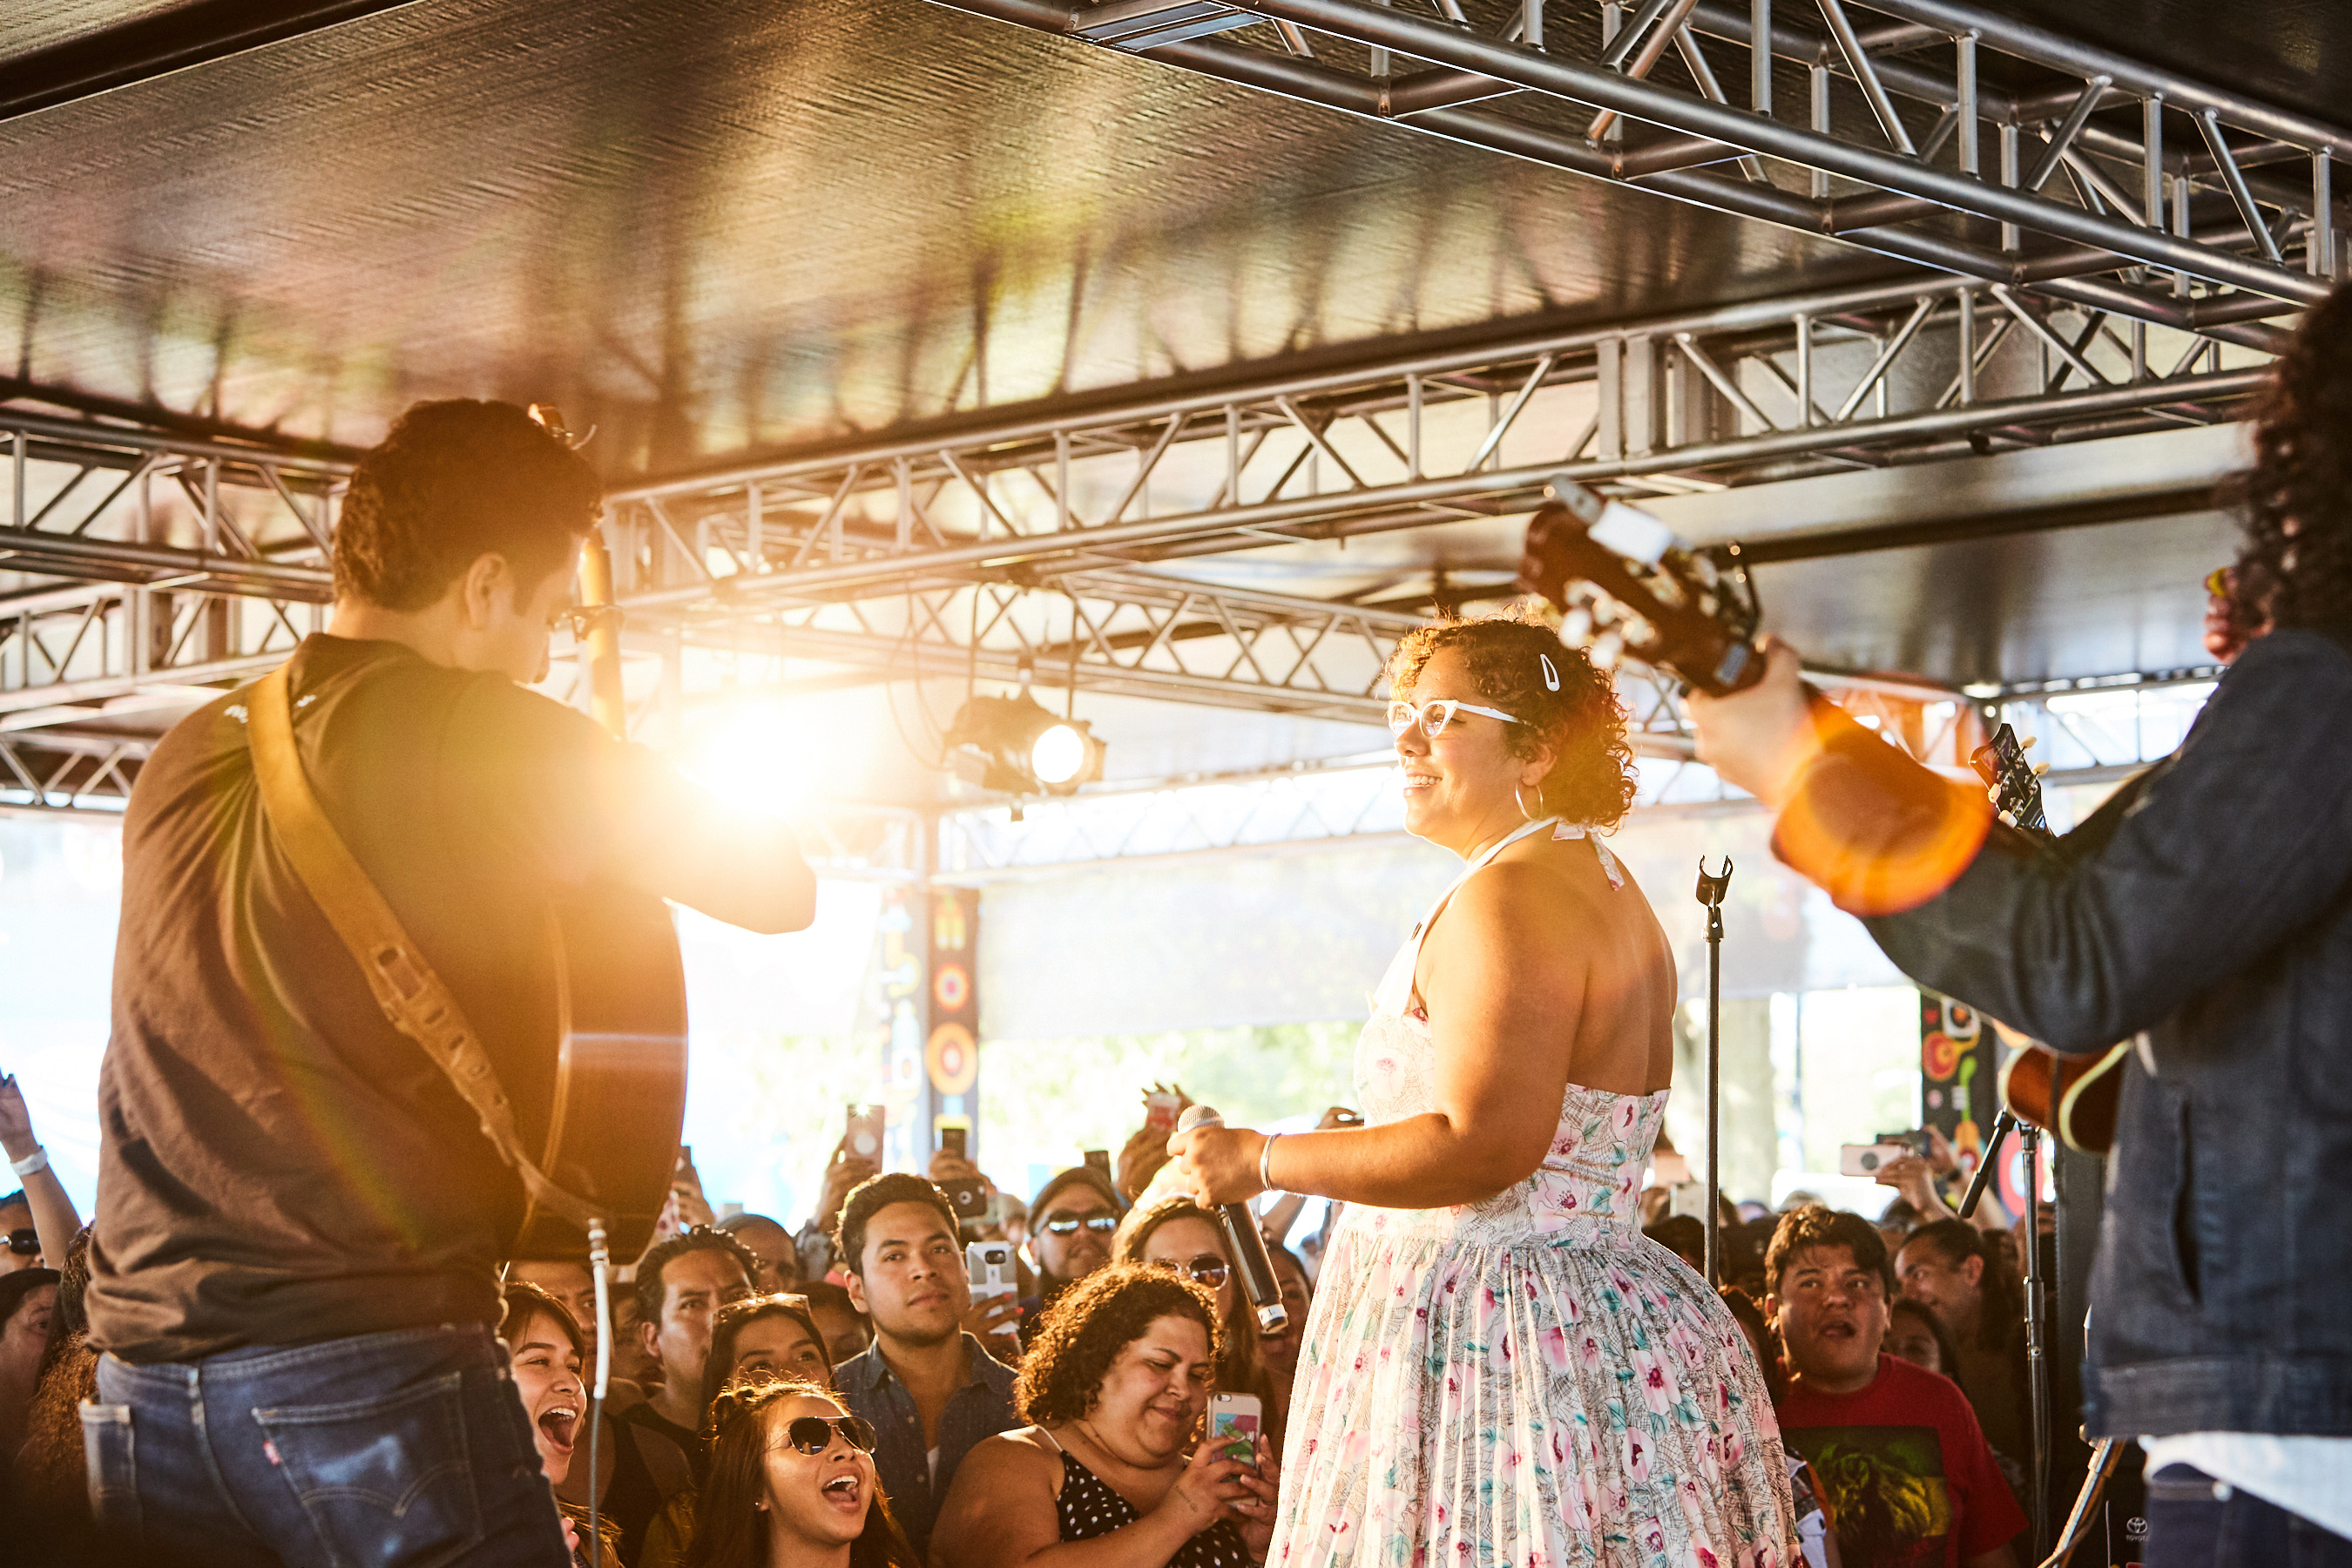 The Toyota Music Den at Ruido Fest 2017 featured La Santa Cecilia who rocked day 2 of a music-packed weekend.